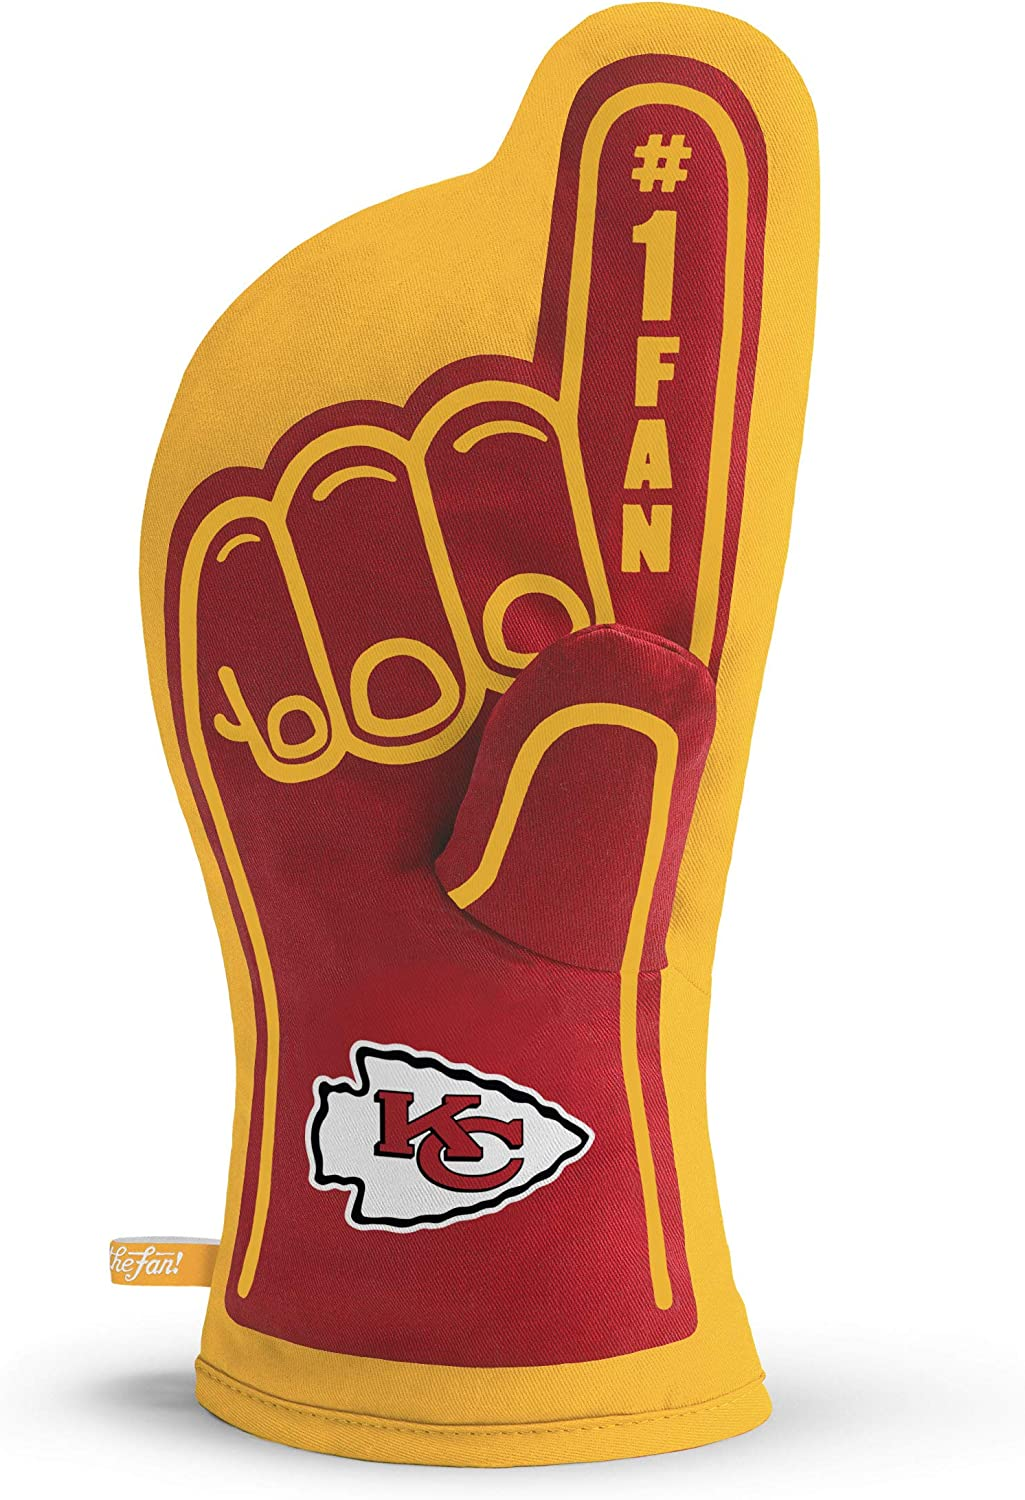 YouTheFan NFL #1 Oven Mitt:13.25'' x 6.5'' Heat Resistant 100% Quilted Cotton Team Oven Mitt